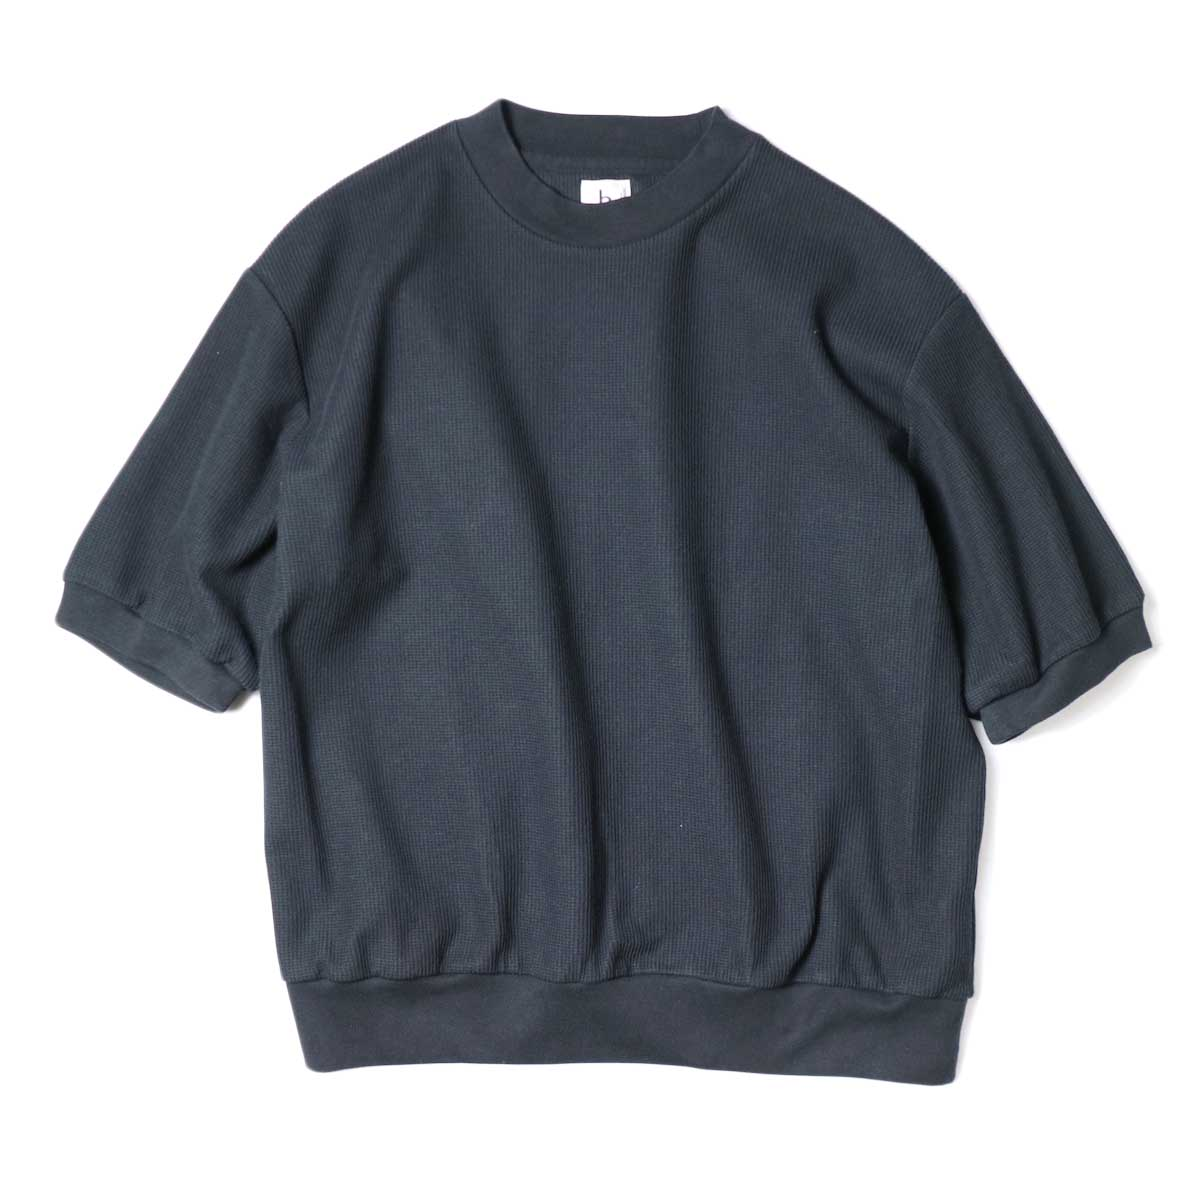 blurhms / Rough&Smooth Thermal Pullover S/S (Black) 正面